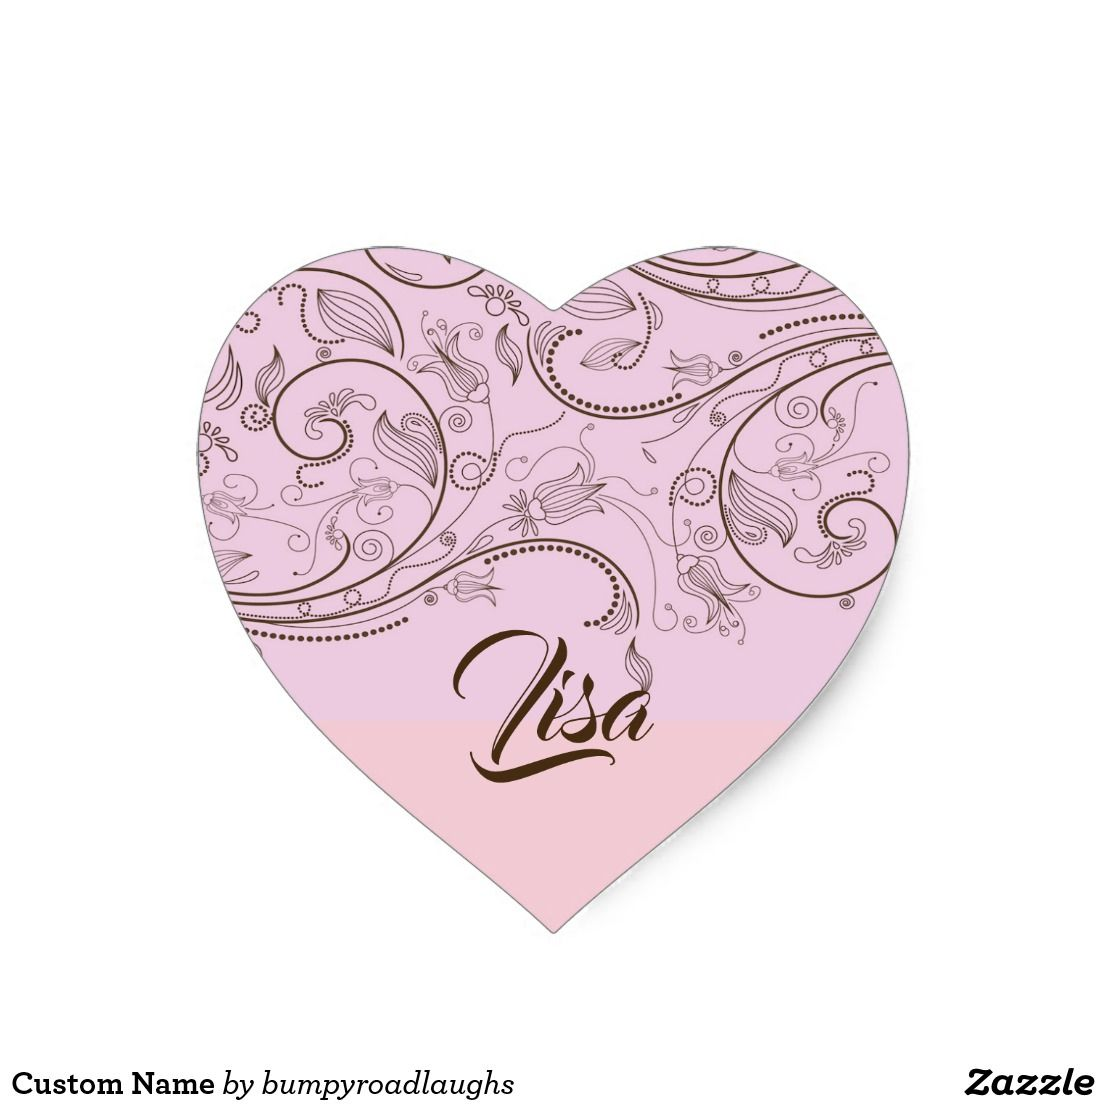 Custom name heart sticker zazzle com bumper stickers stickers